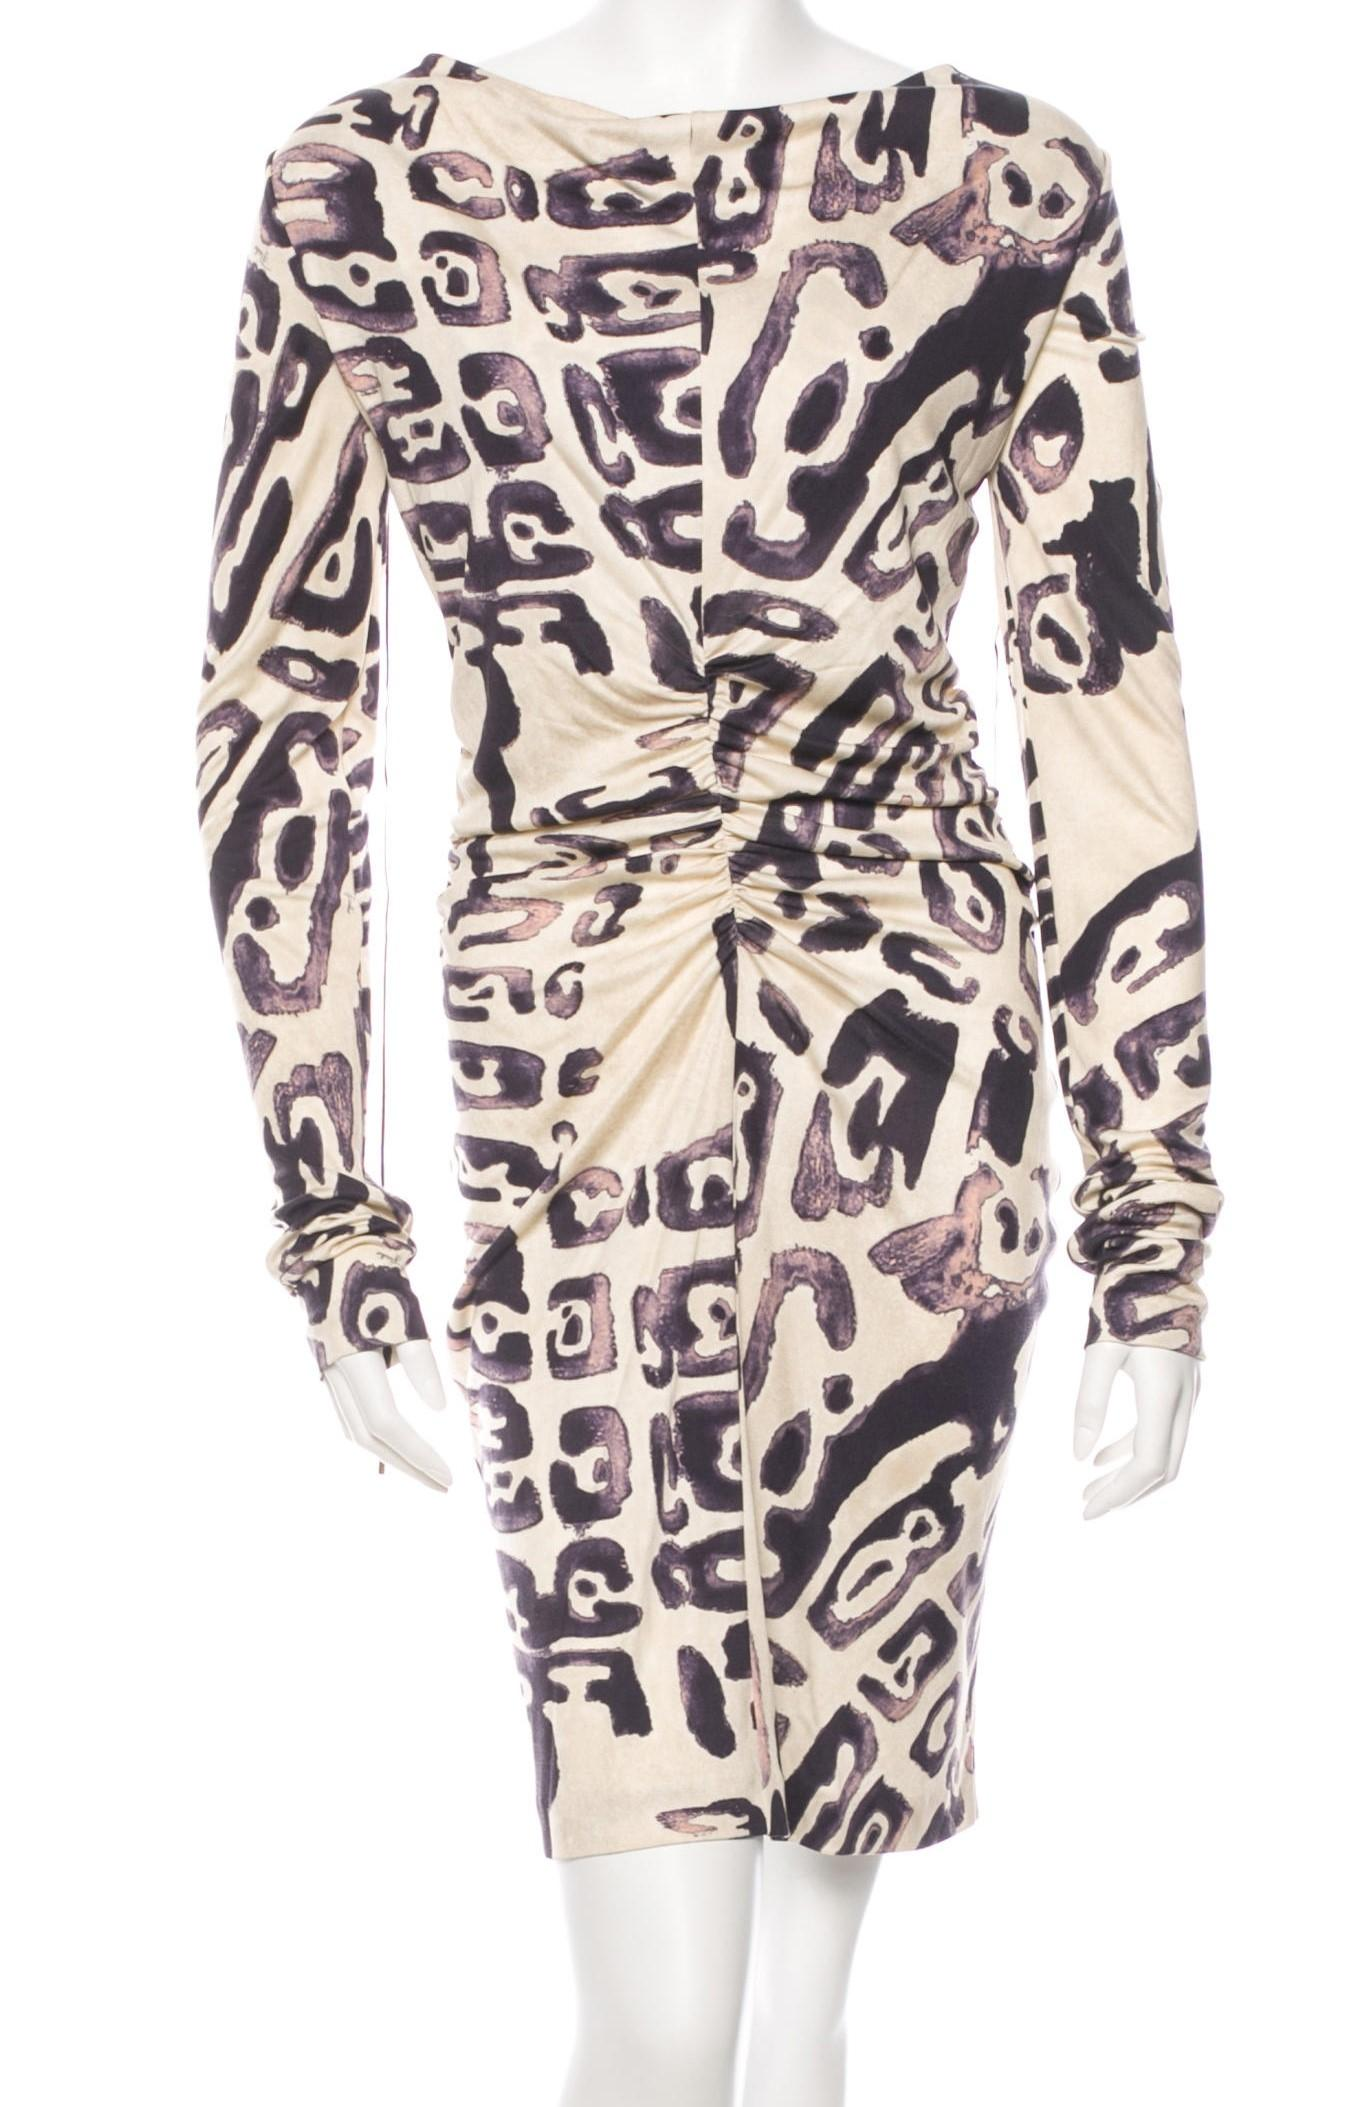 Emilio Pucci 2012 Isfahani Dress On Sale Emilio Pucci Sale Up to